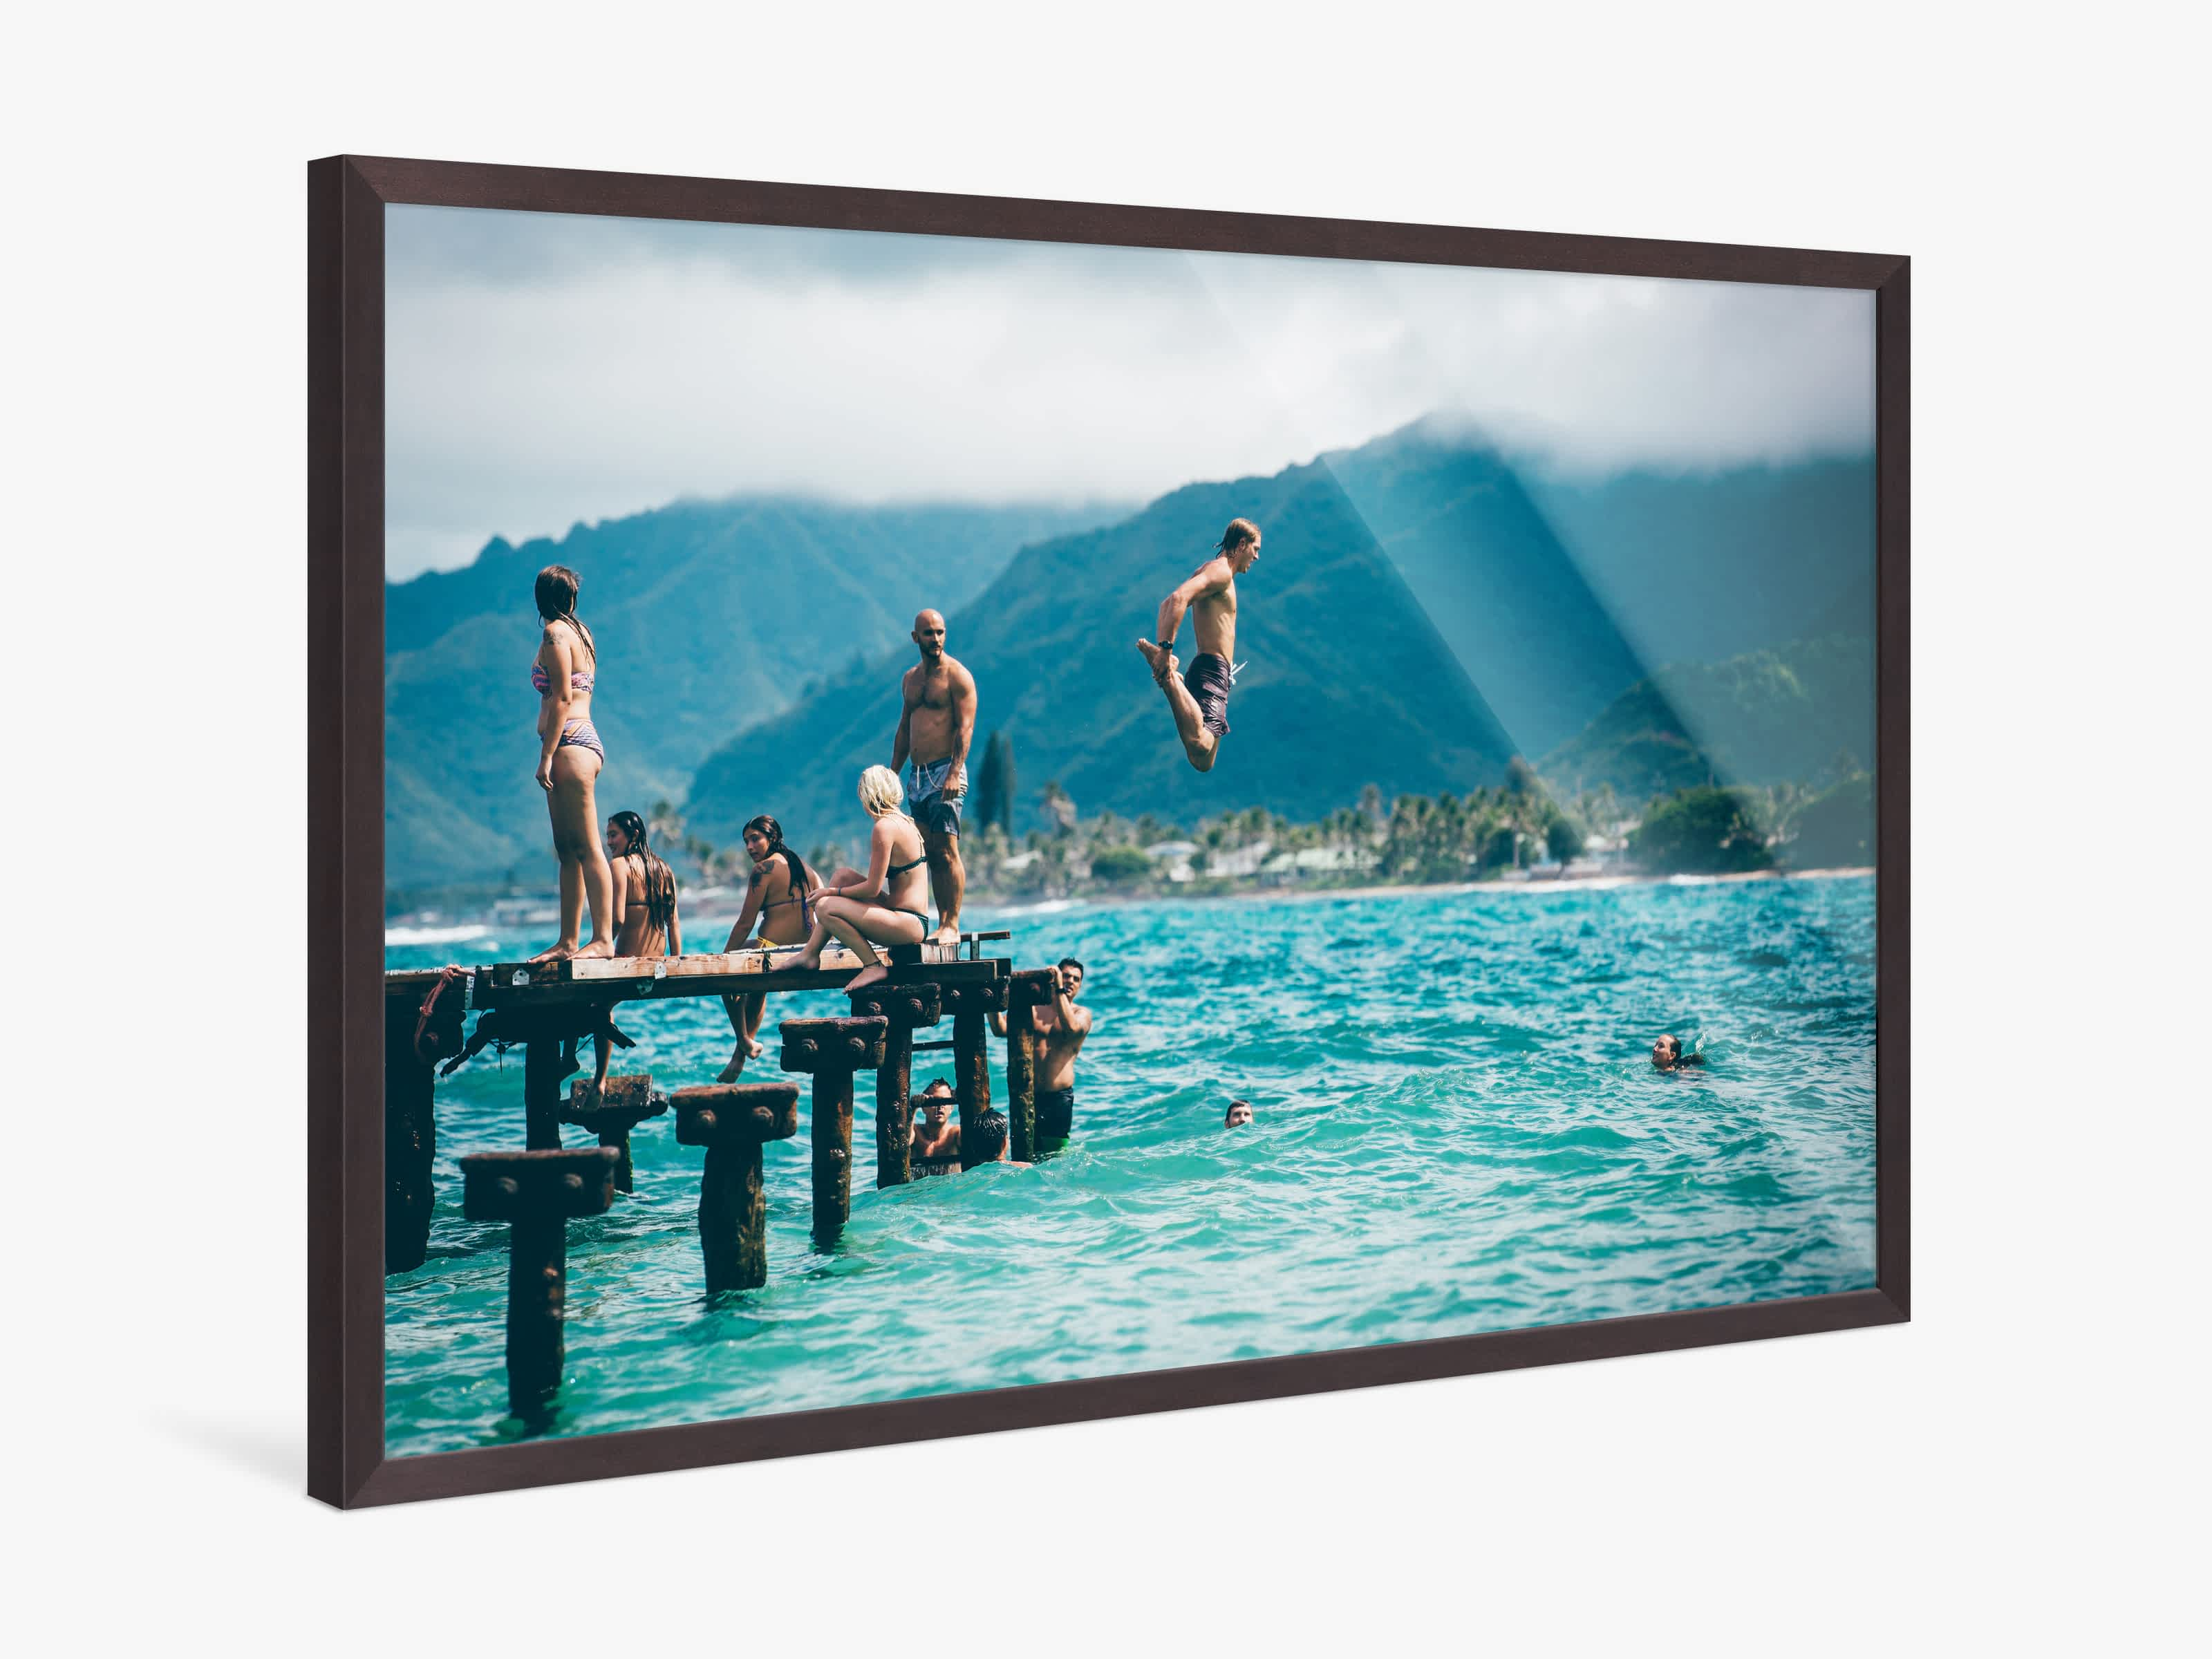 Gallery Frame | Product View